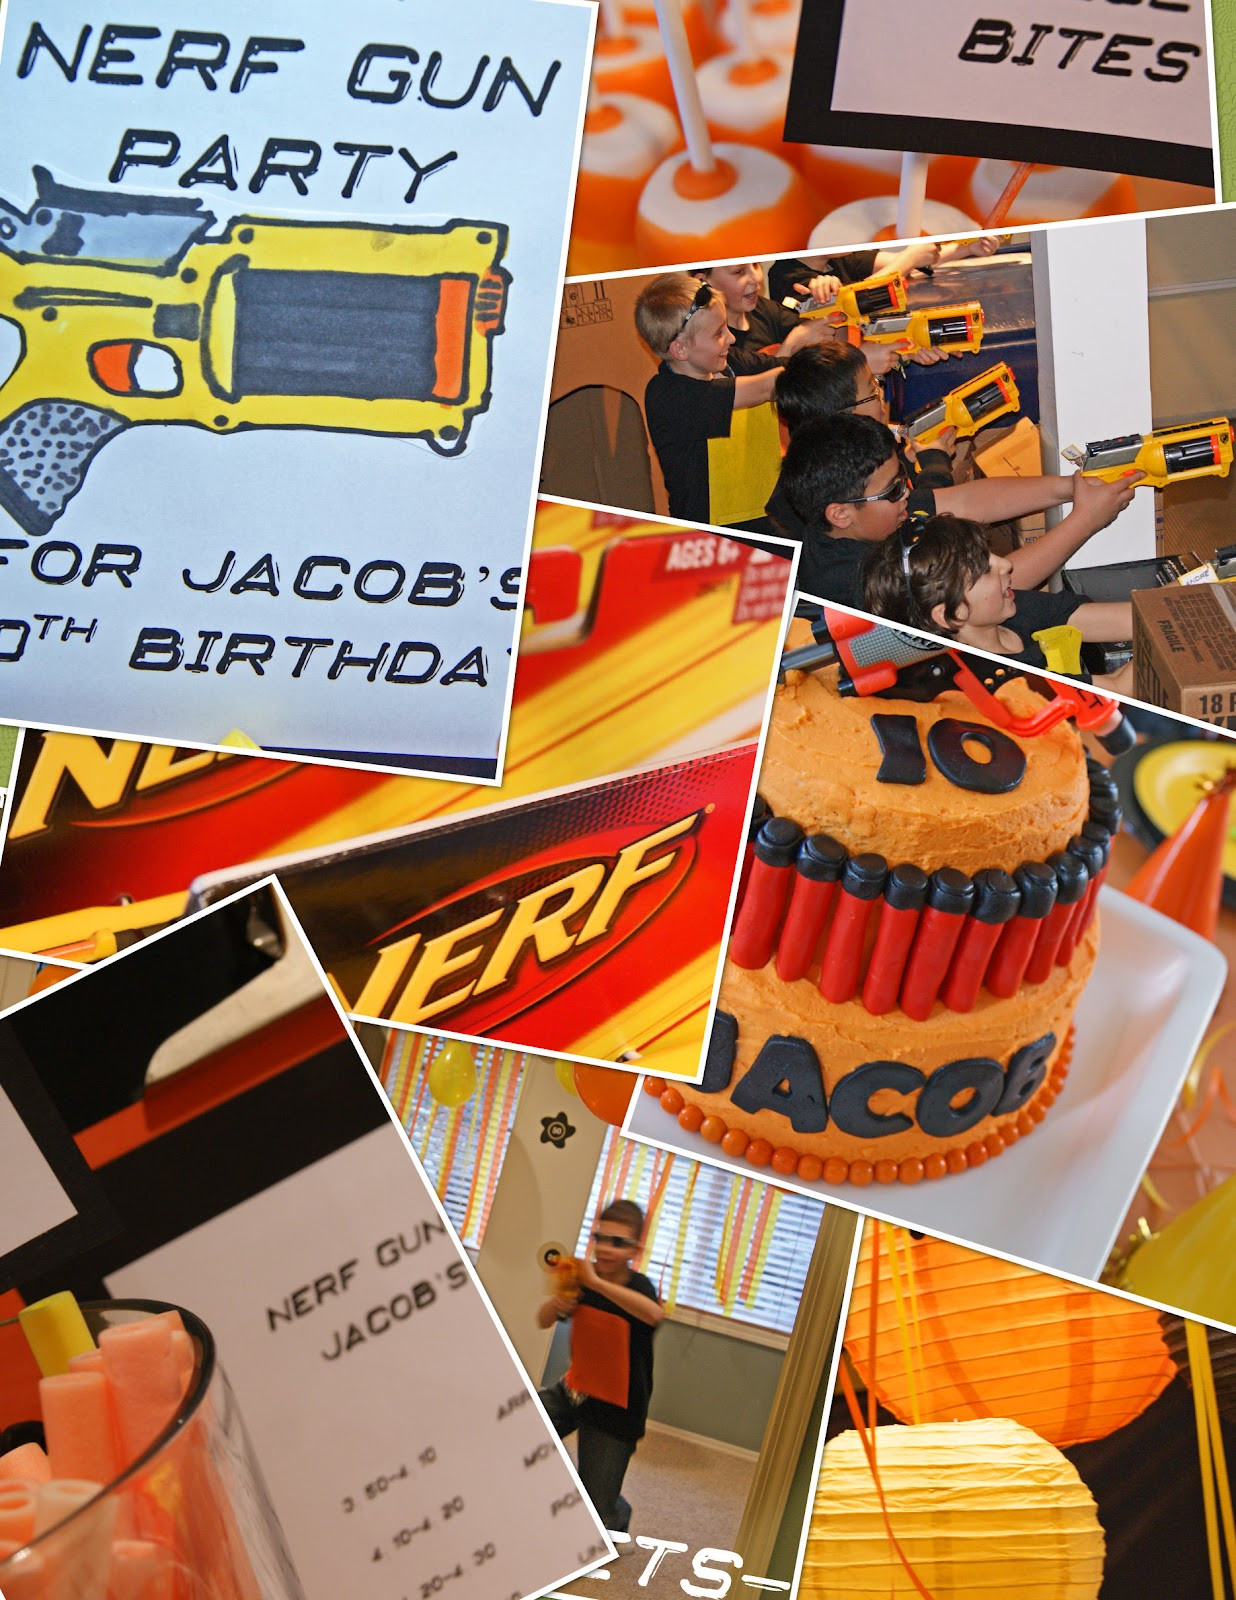 Nerf Birthday Party Decorations  michelle paige blogs Nerf Gun Party